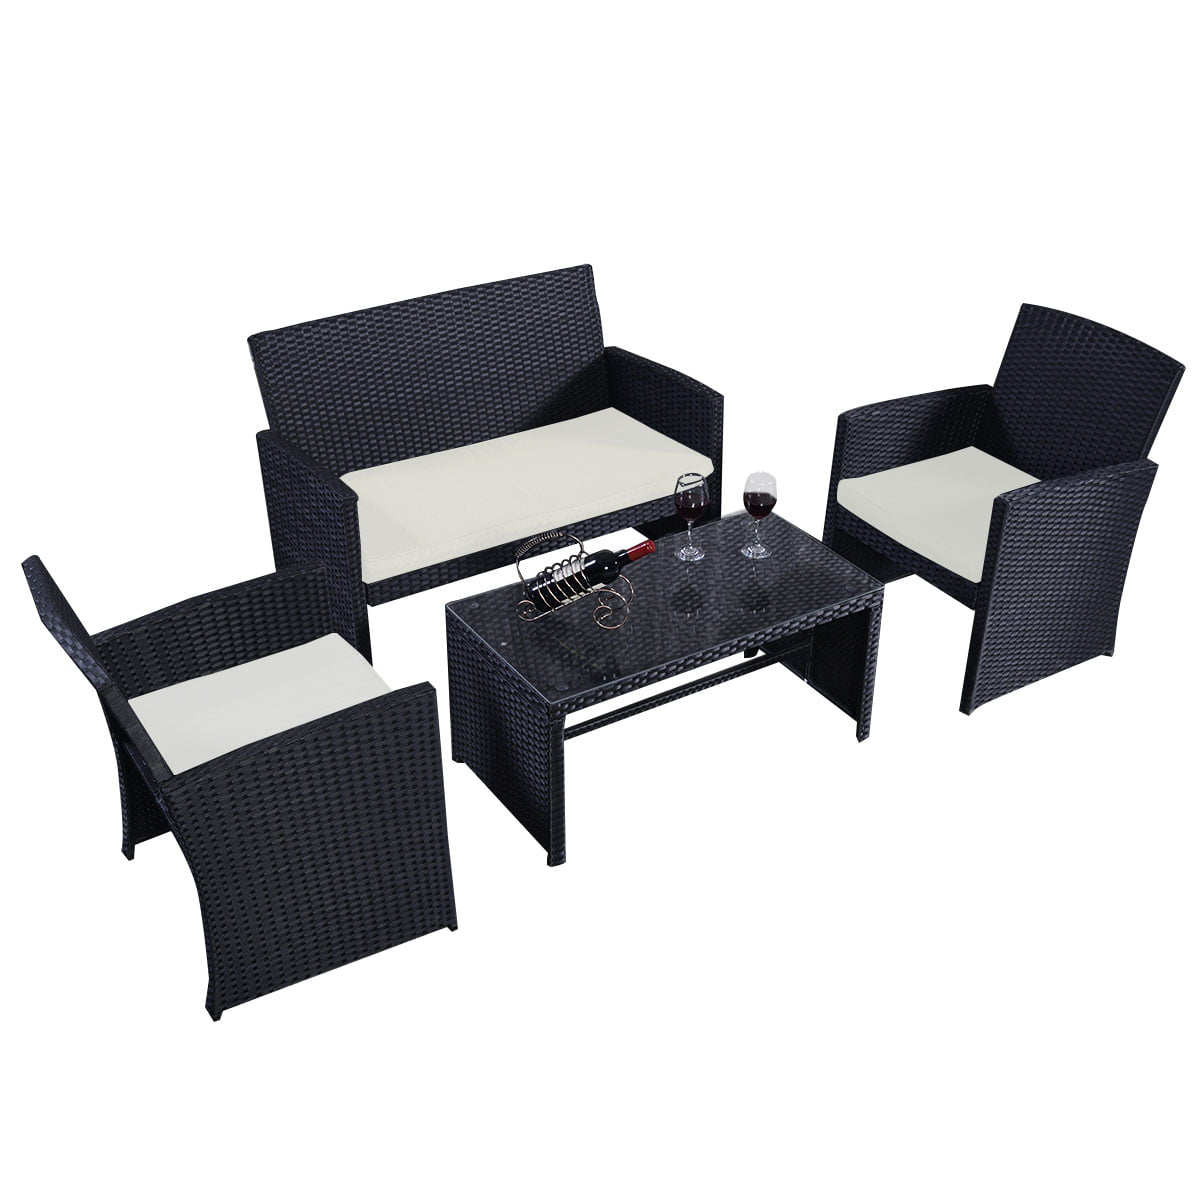 Costway 4 Pc Rattan Patio Furniture Set Garden Lawn Sofa Wicker Cushioned  Seat Black   Walmart.com